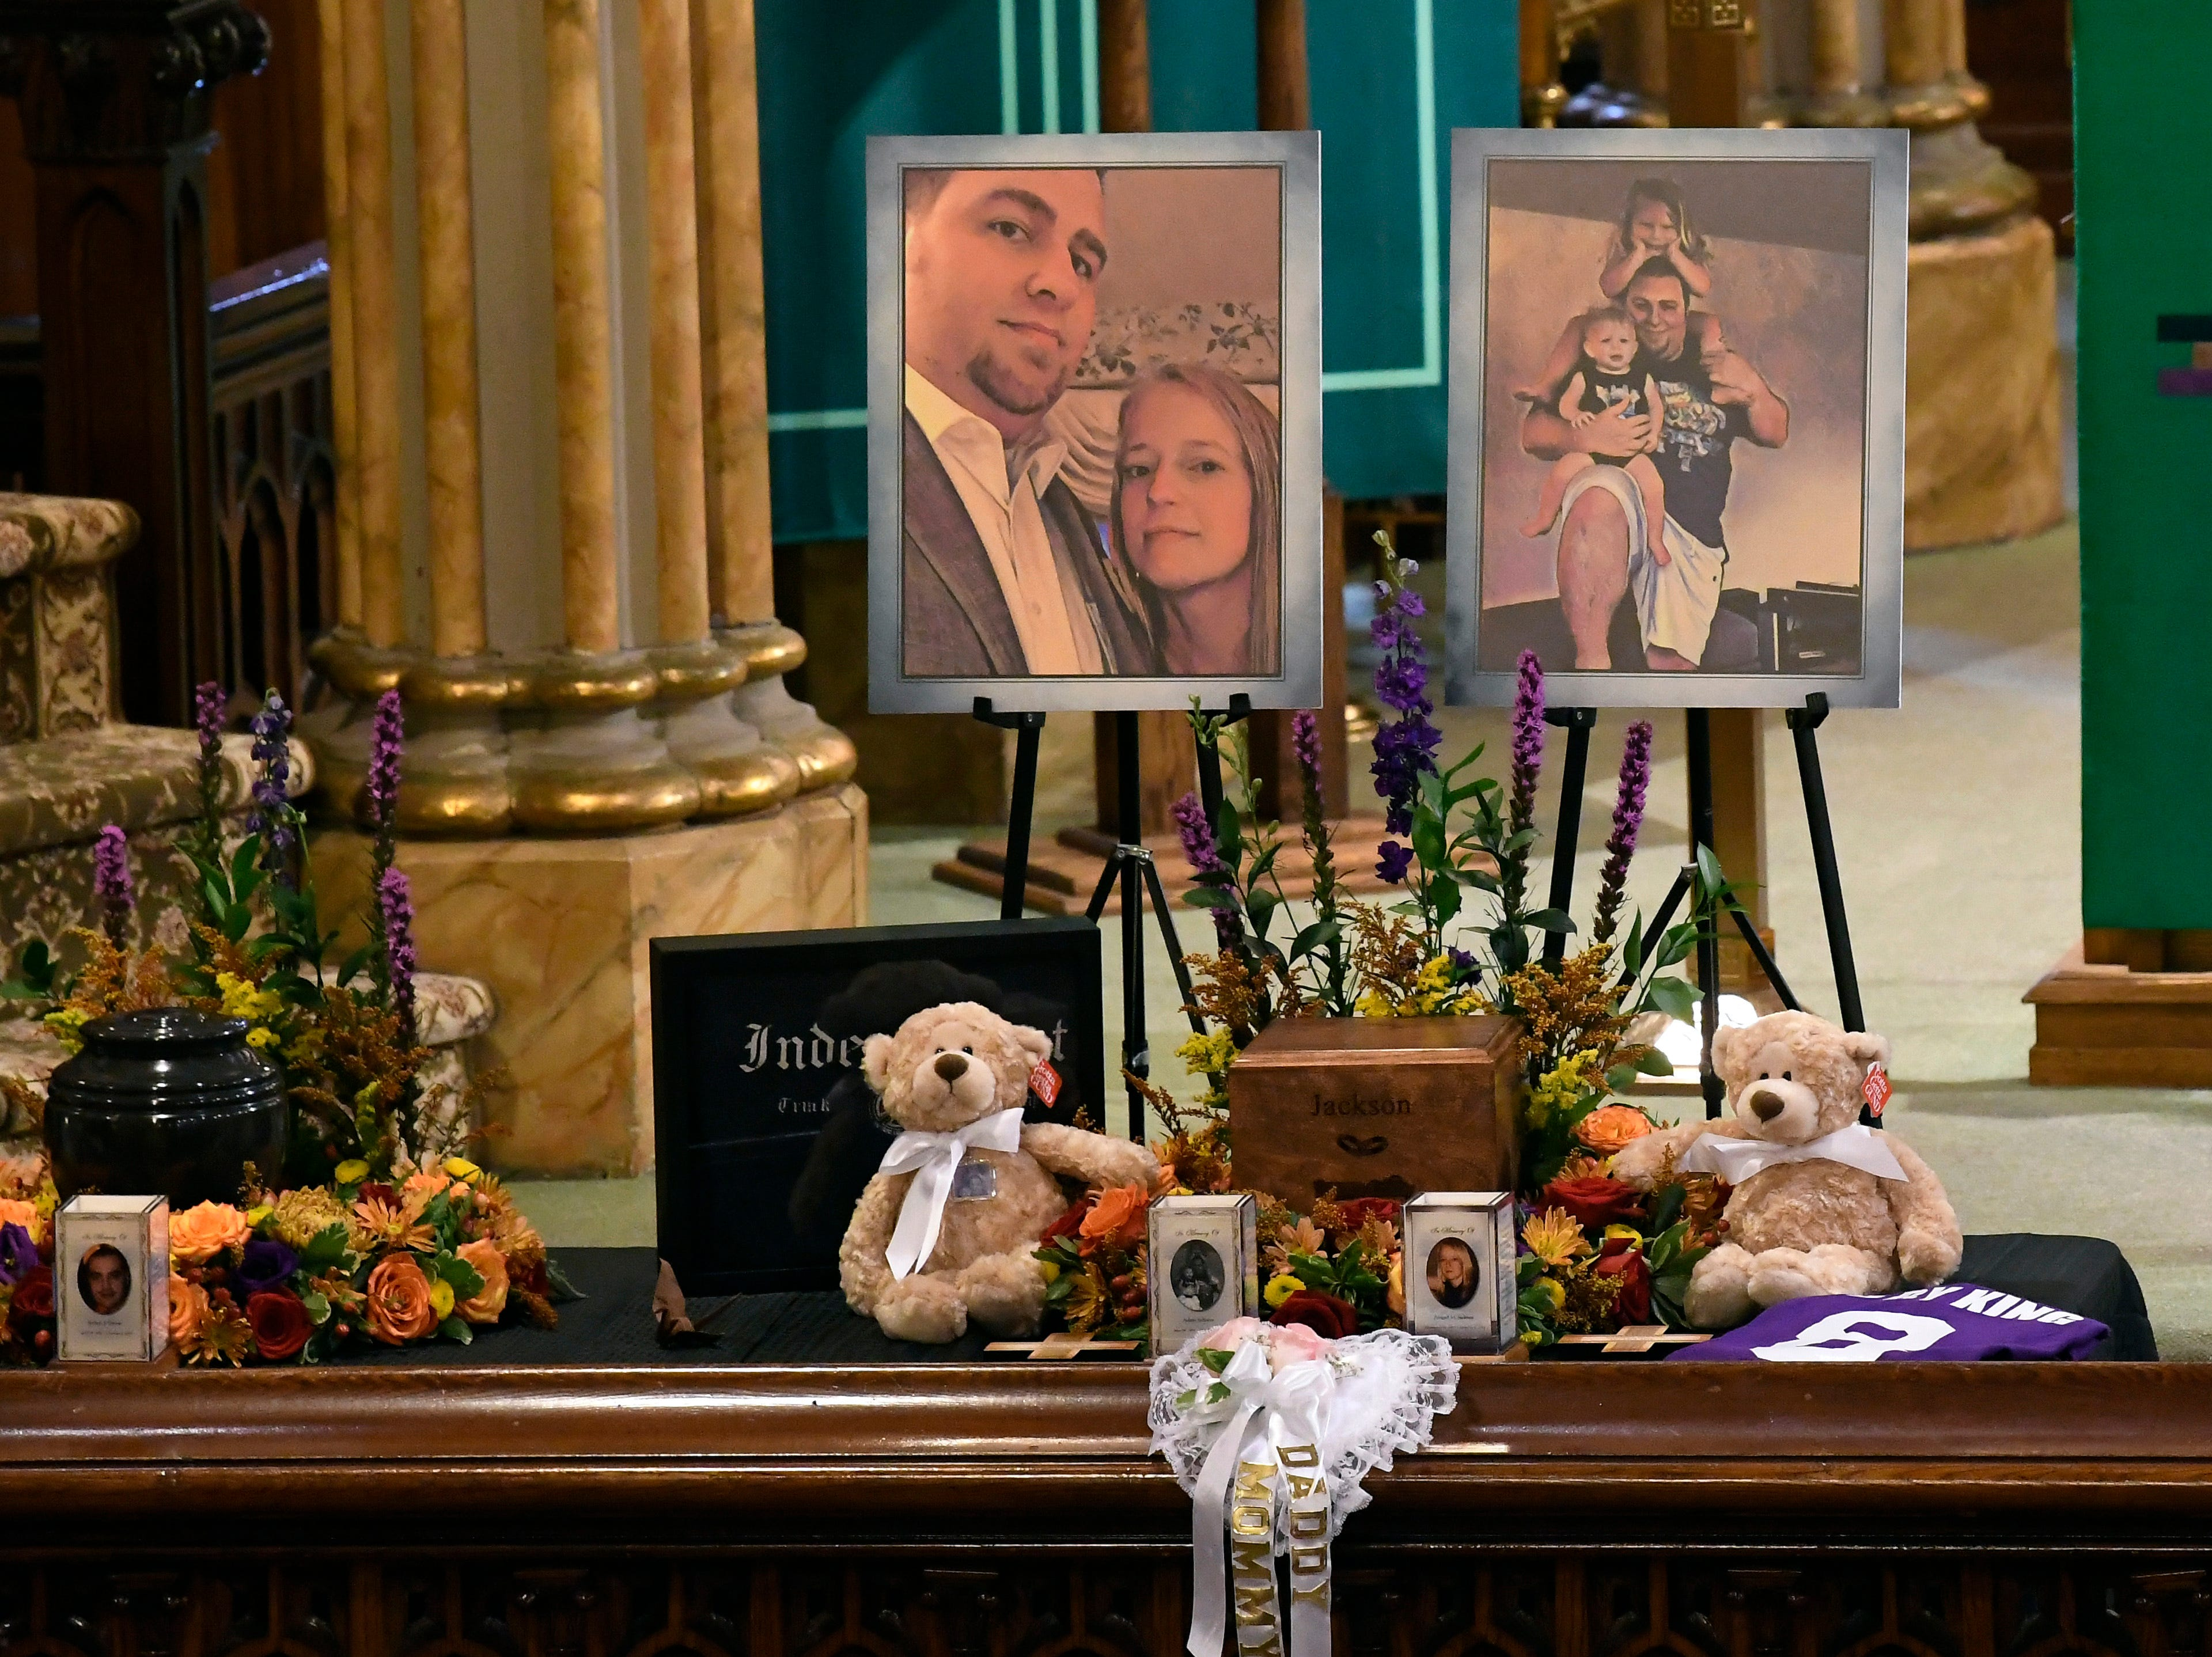 A unity urn with cremated ashes of Adam Jackson and Abigail Jackson is set in place as friends and family prepare for a funeral mass at St. Stanislaus Roman Catholic Church in Amsterdam, N.Y., for eight of the 20 people killed in last Saturday's fatal limousine crash in Schoharie, N.Y., Saturday, Oct. 13, 2018. (AP Photo/Hans Pennink)